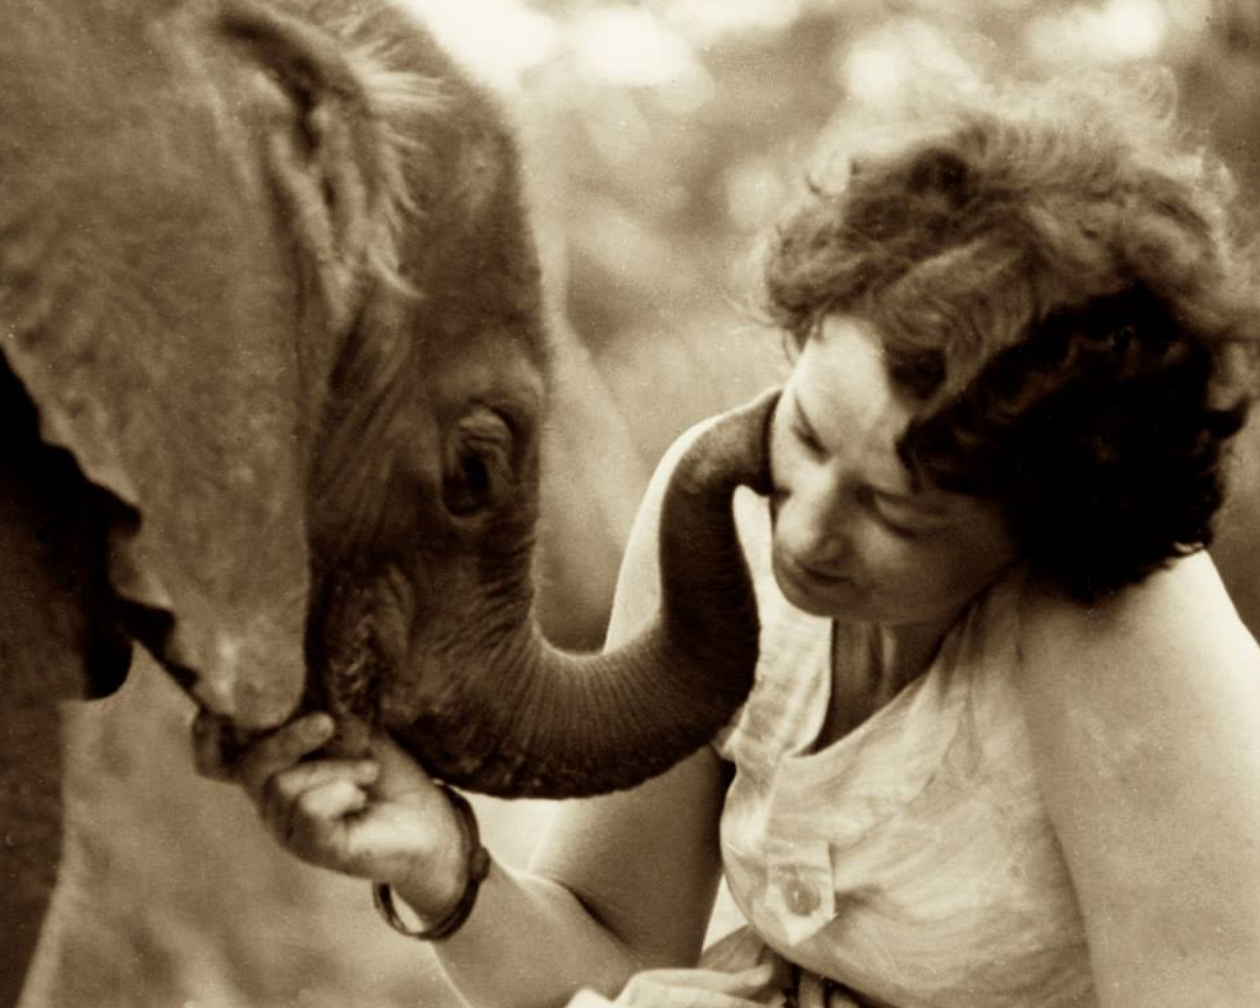 Daphne Sheldrick dedicated the last 60 years of her life to the protection of wildlife in Kenya. Read about here contribution to wildlife conservation  here  on Good Nature Travel.Source: The David Sheldrick Wildlife Trust